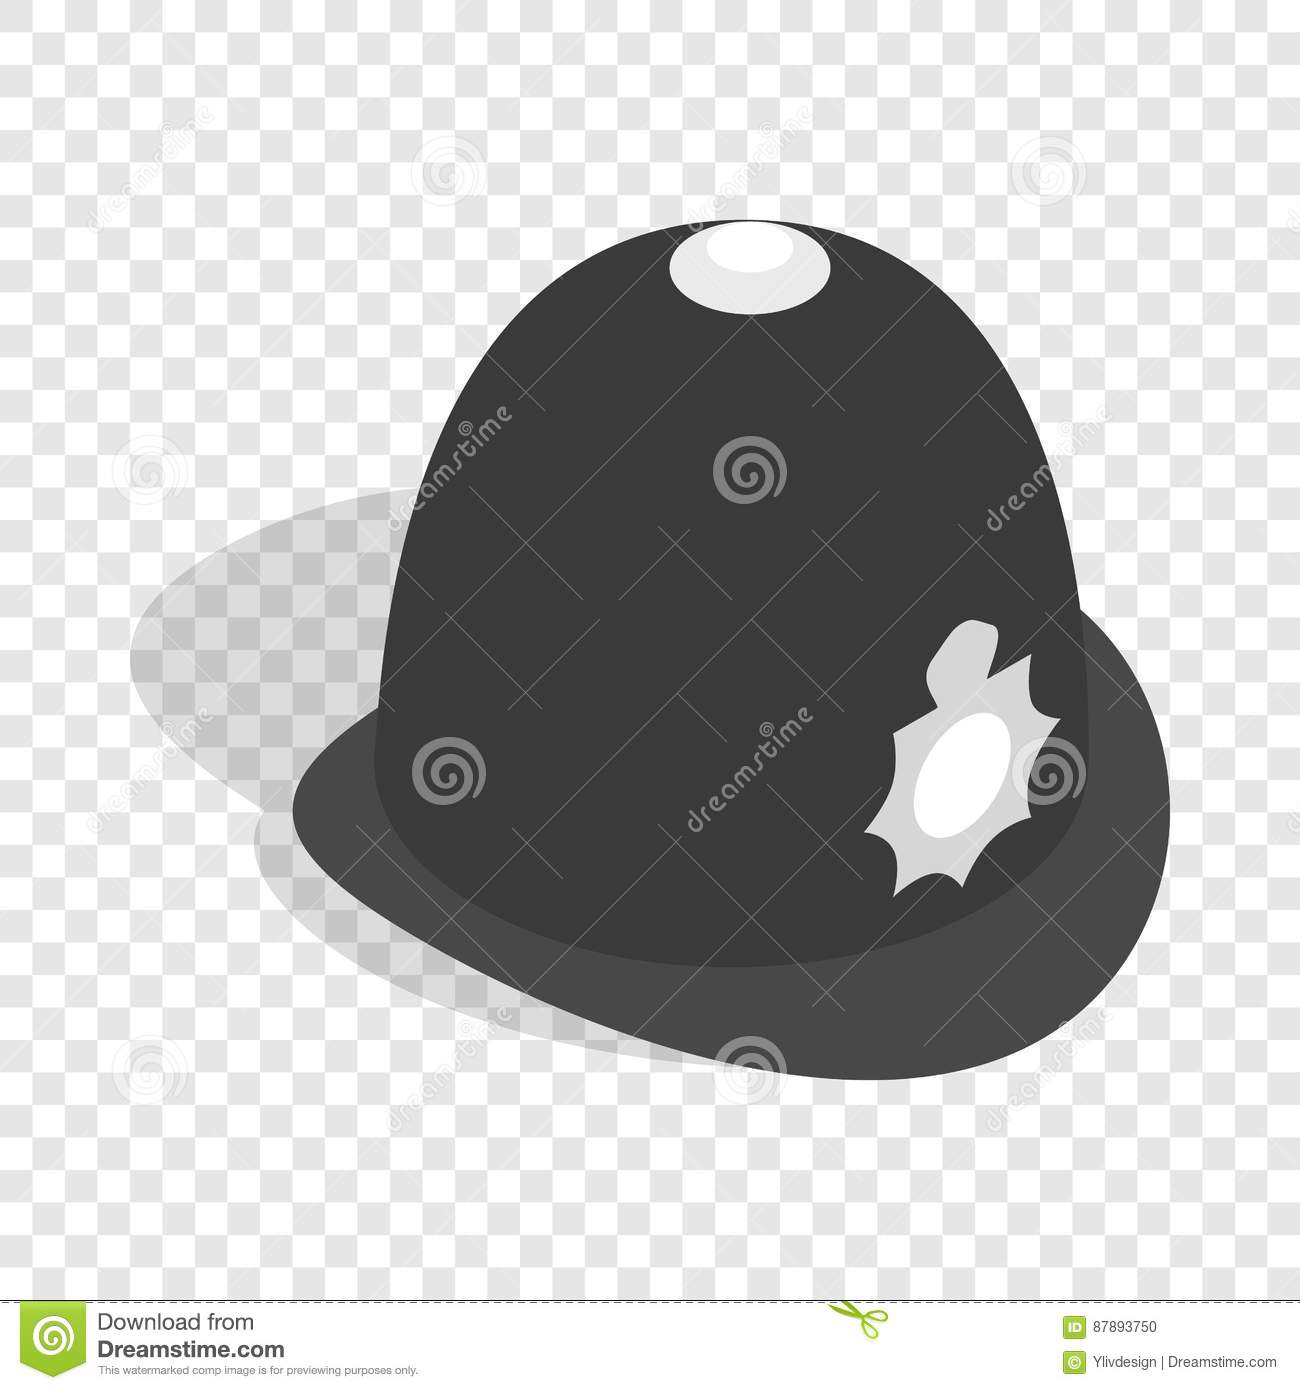 772f8eb4e6d Hat english police isometric icon 3d on a transparent background vector  illustration